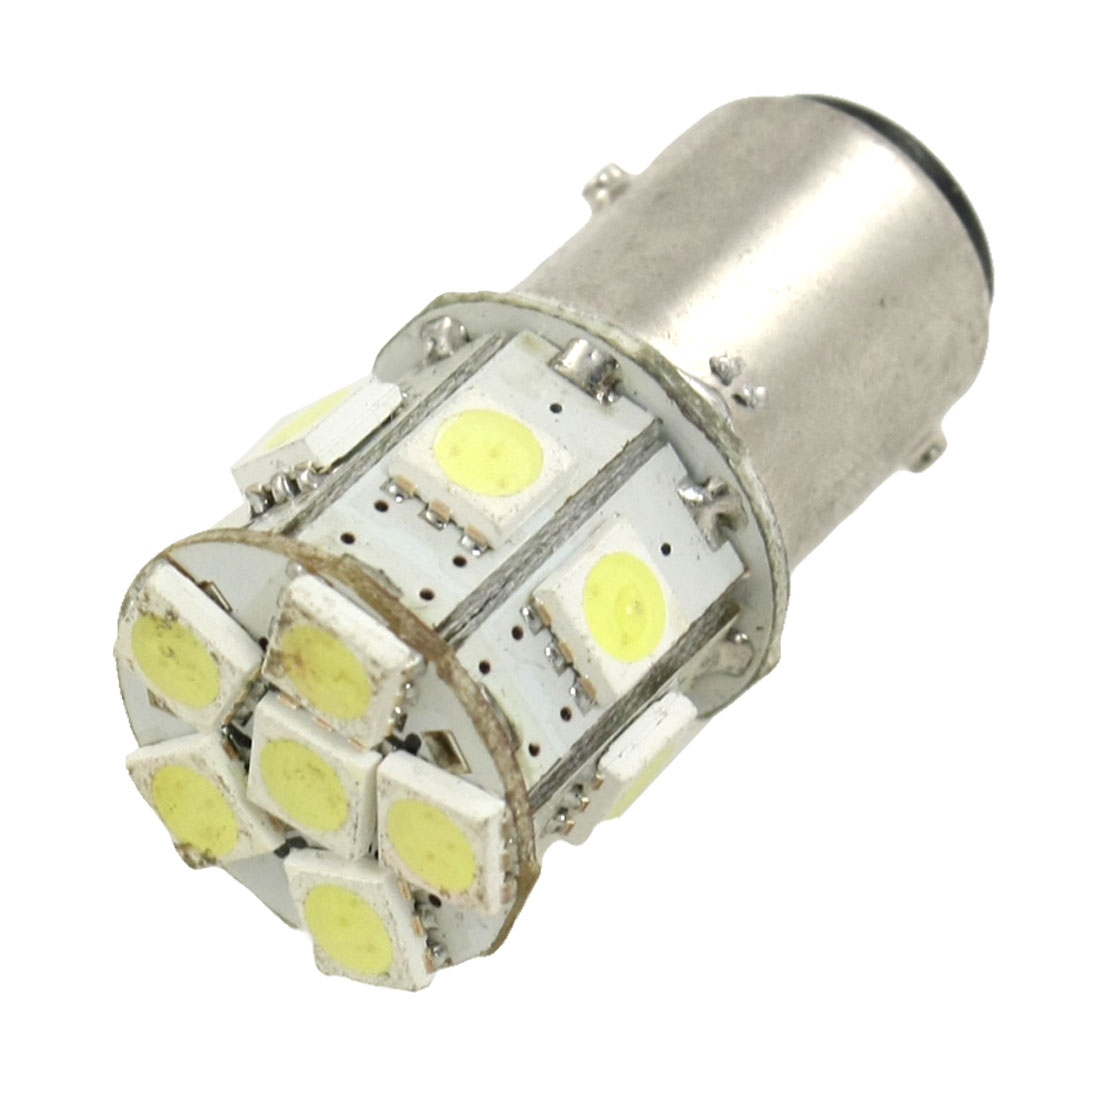 BAY15D 1157 13 White Strob Flash LED 5050 SMD Car Tail Packing Brake Light Bulb